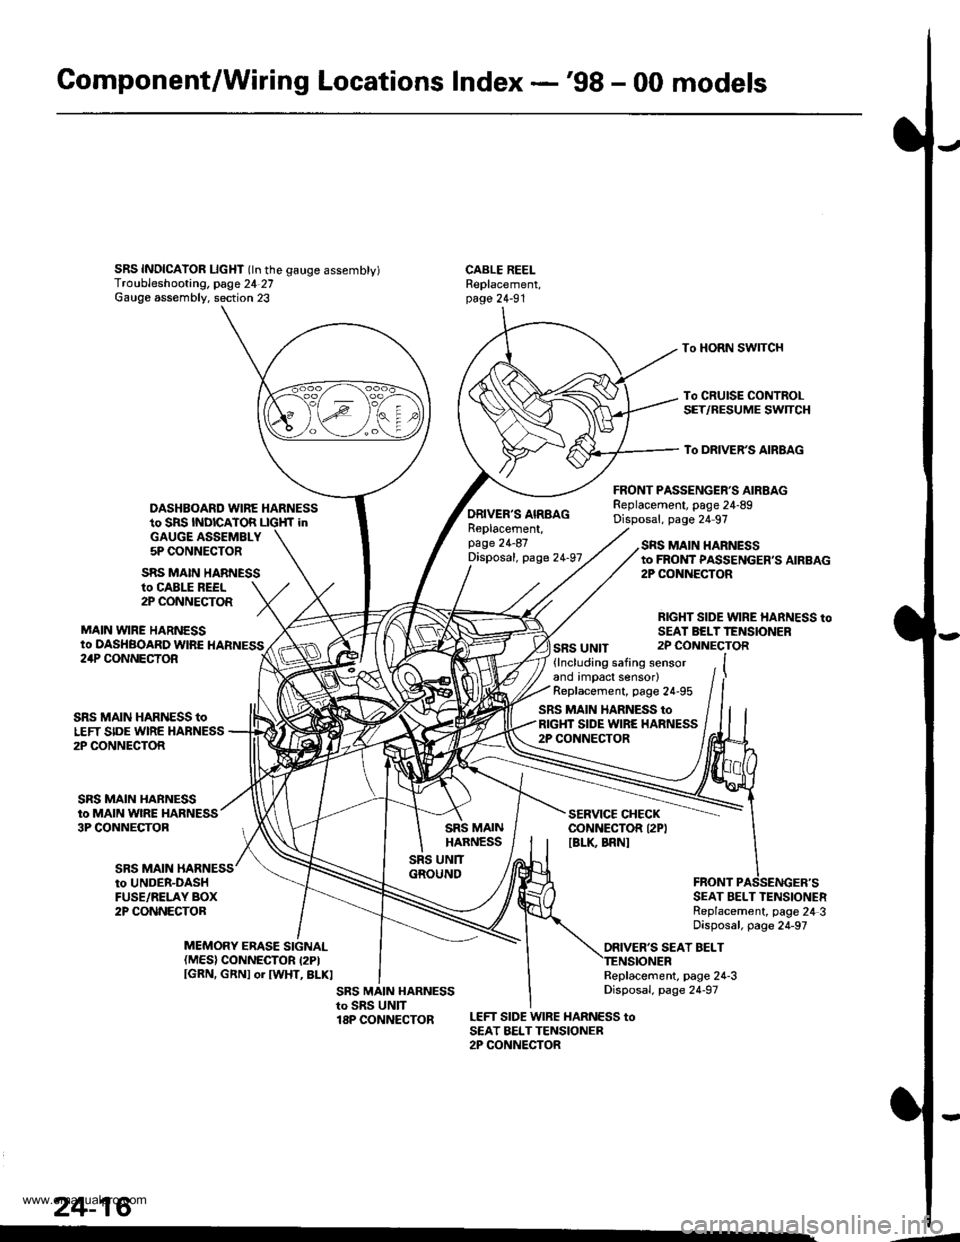 wire harness assembly resume